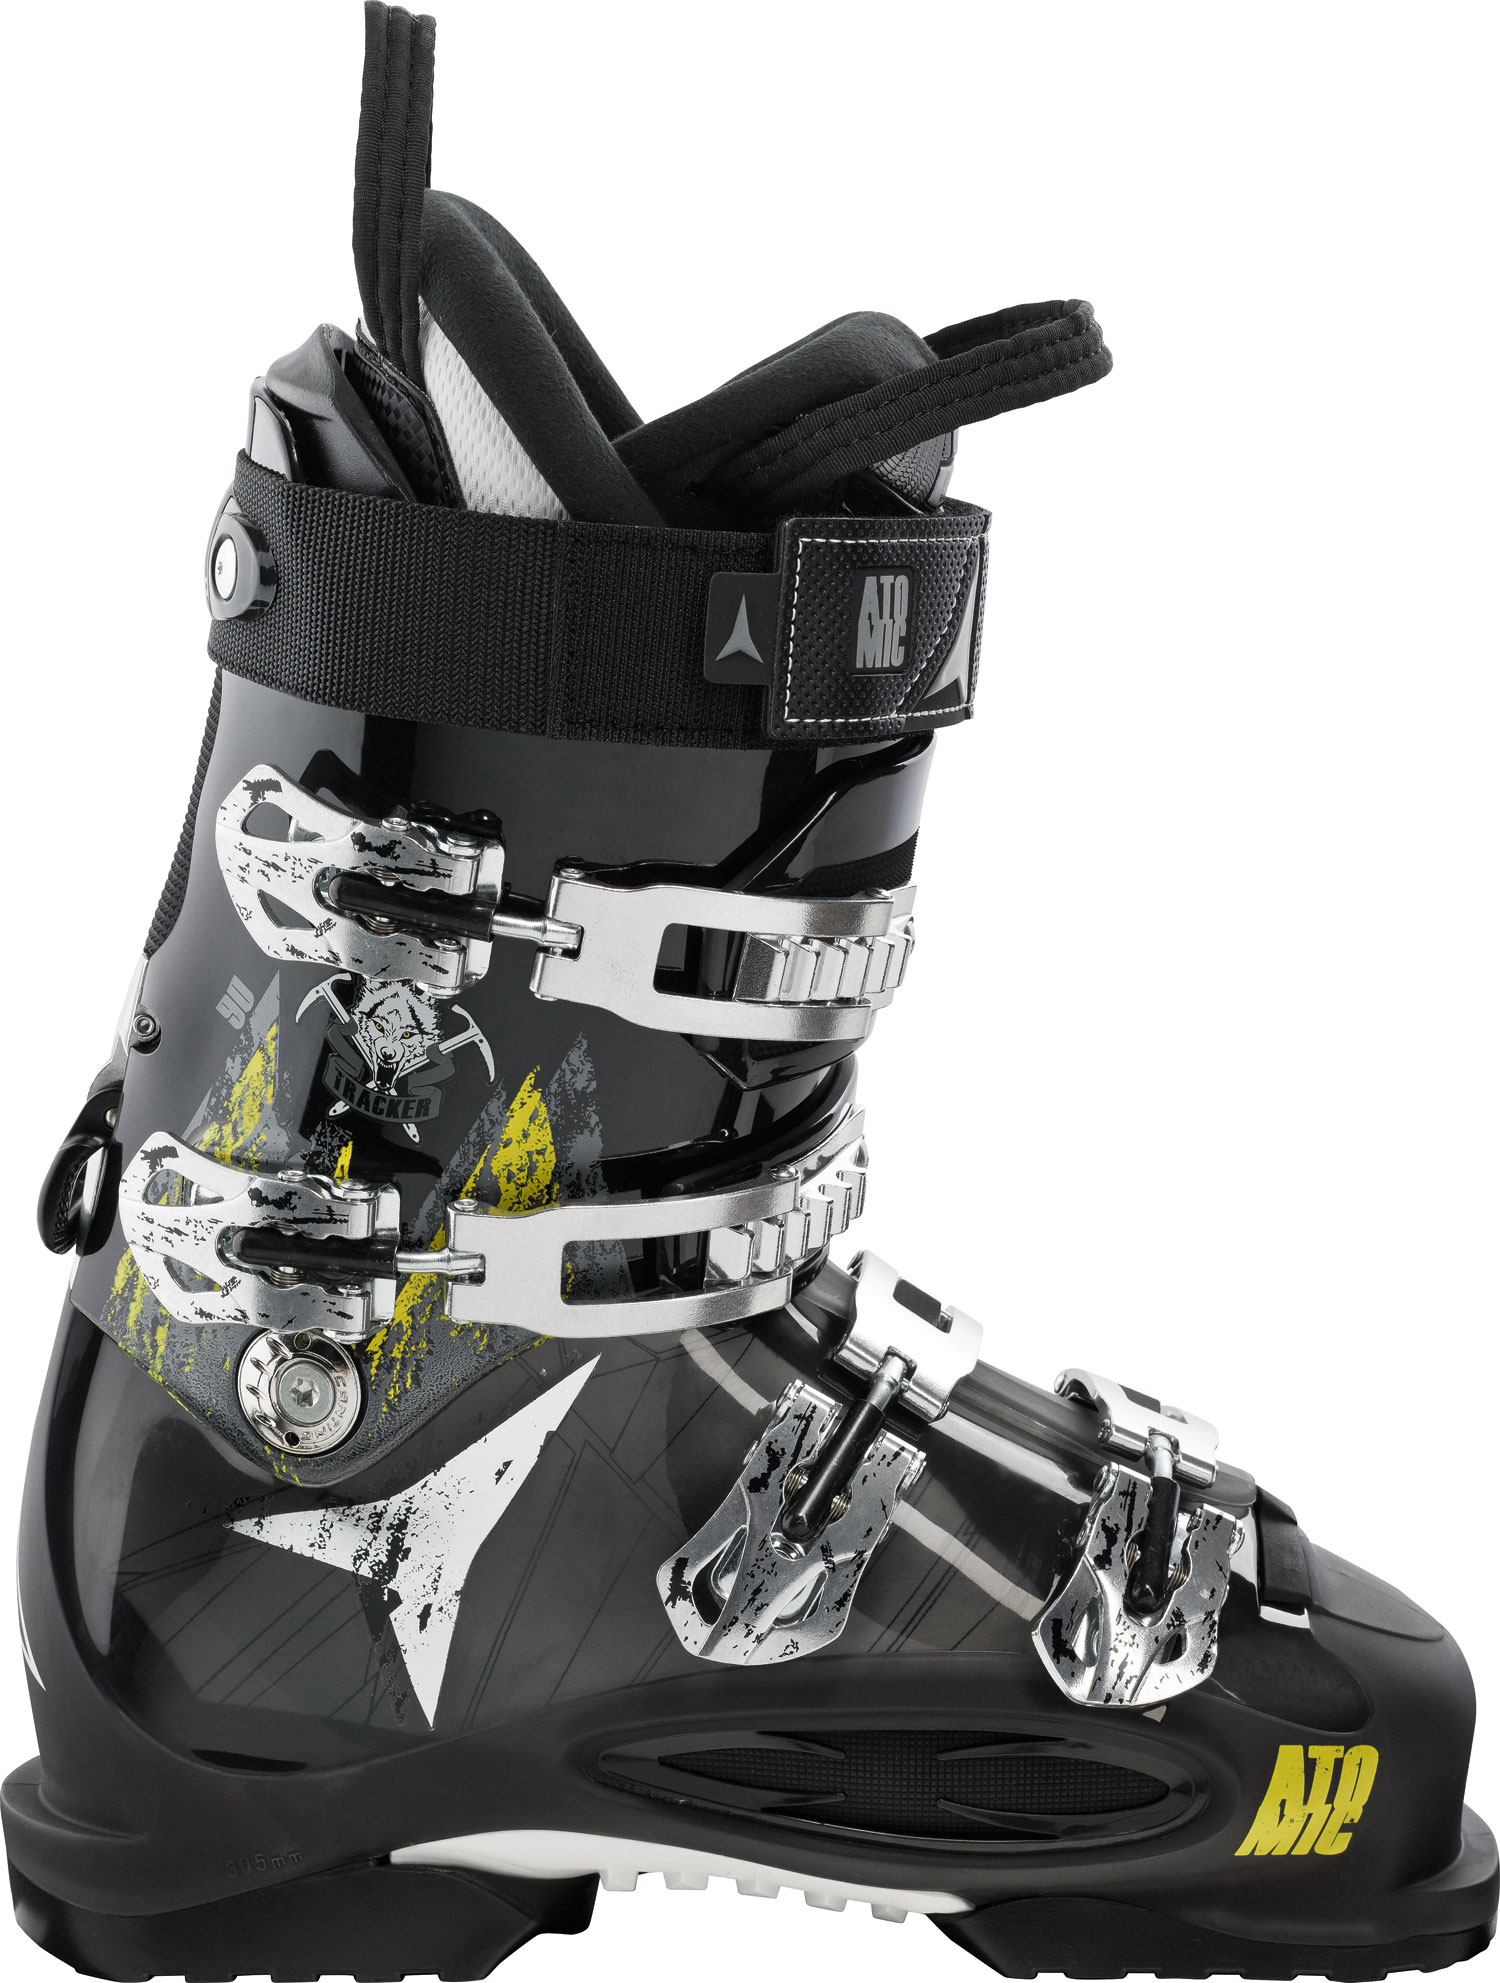 Ski Key Features of the Atomic Tracker 90 Ski Boots: Flex 90 BT 6000 Buckle 35mm Strap Skywalk rubber soles ASY Sport T1 Liner - $314.95